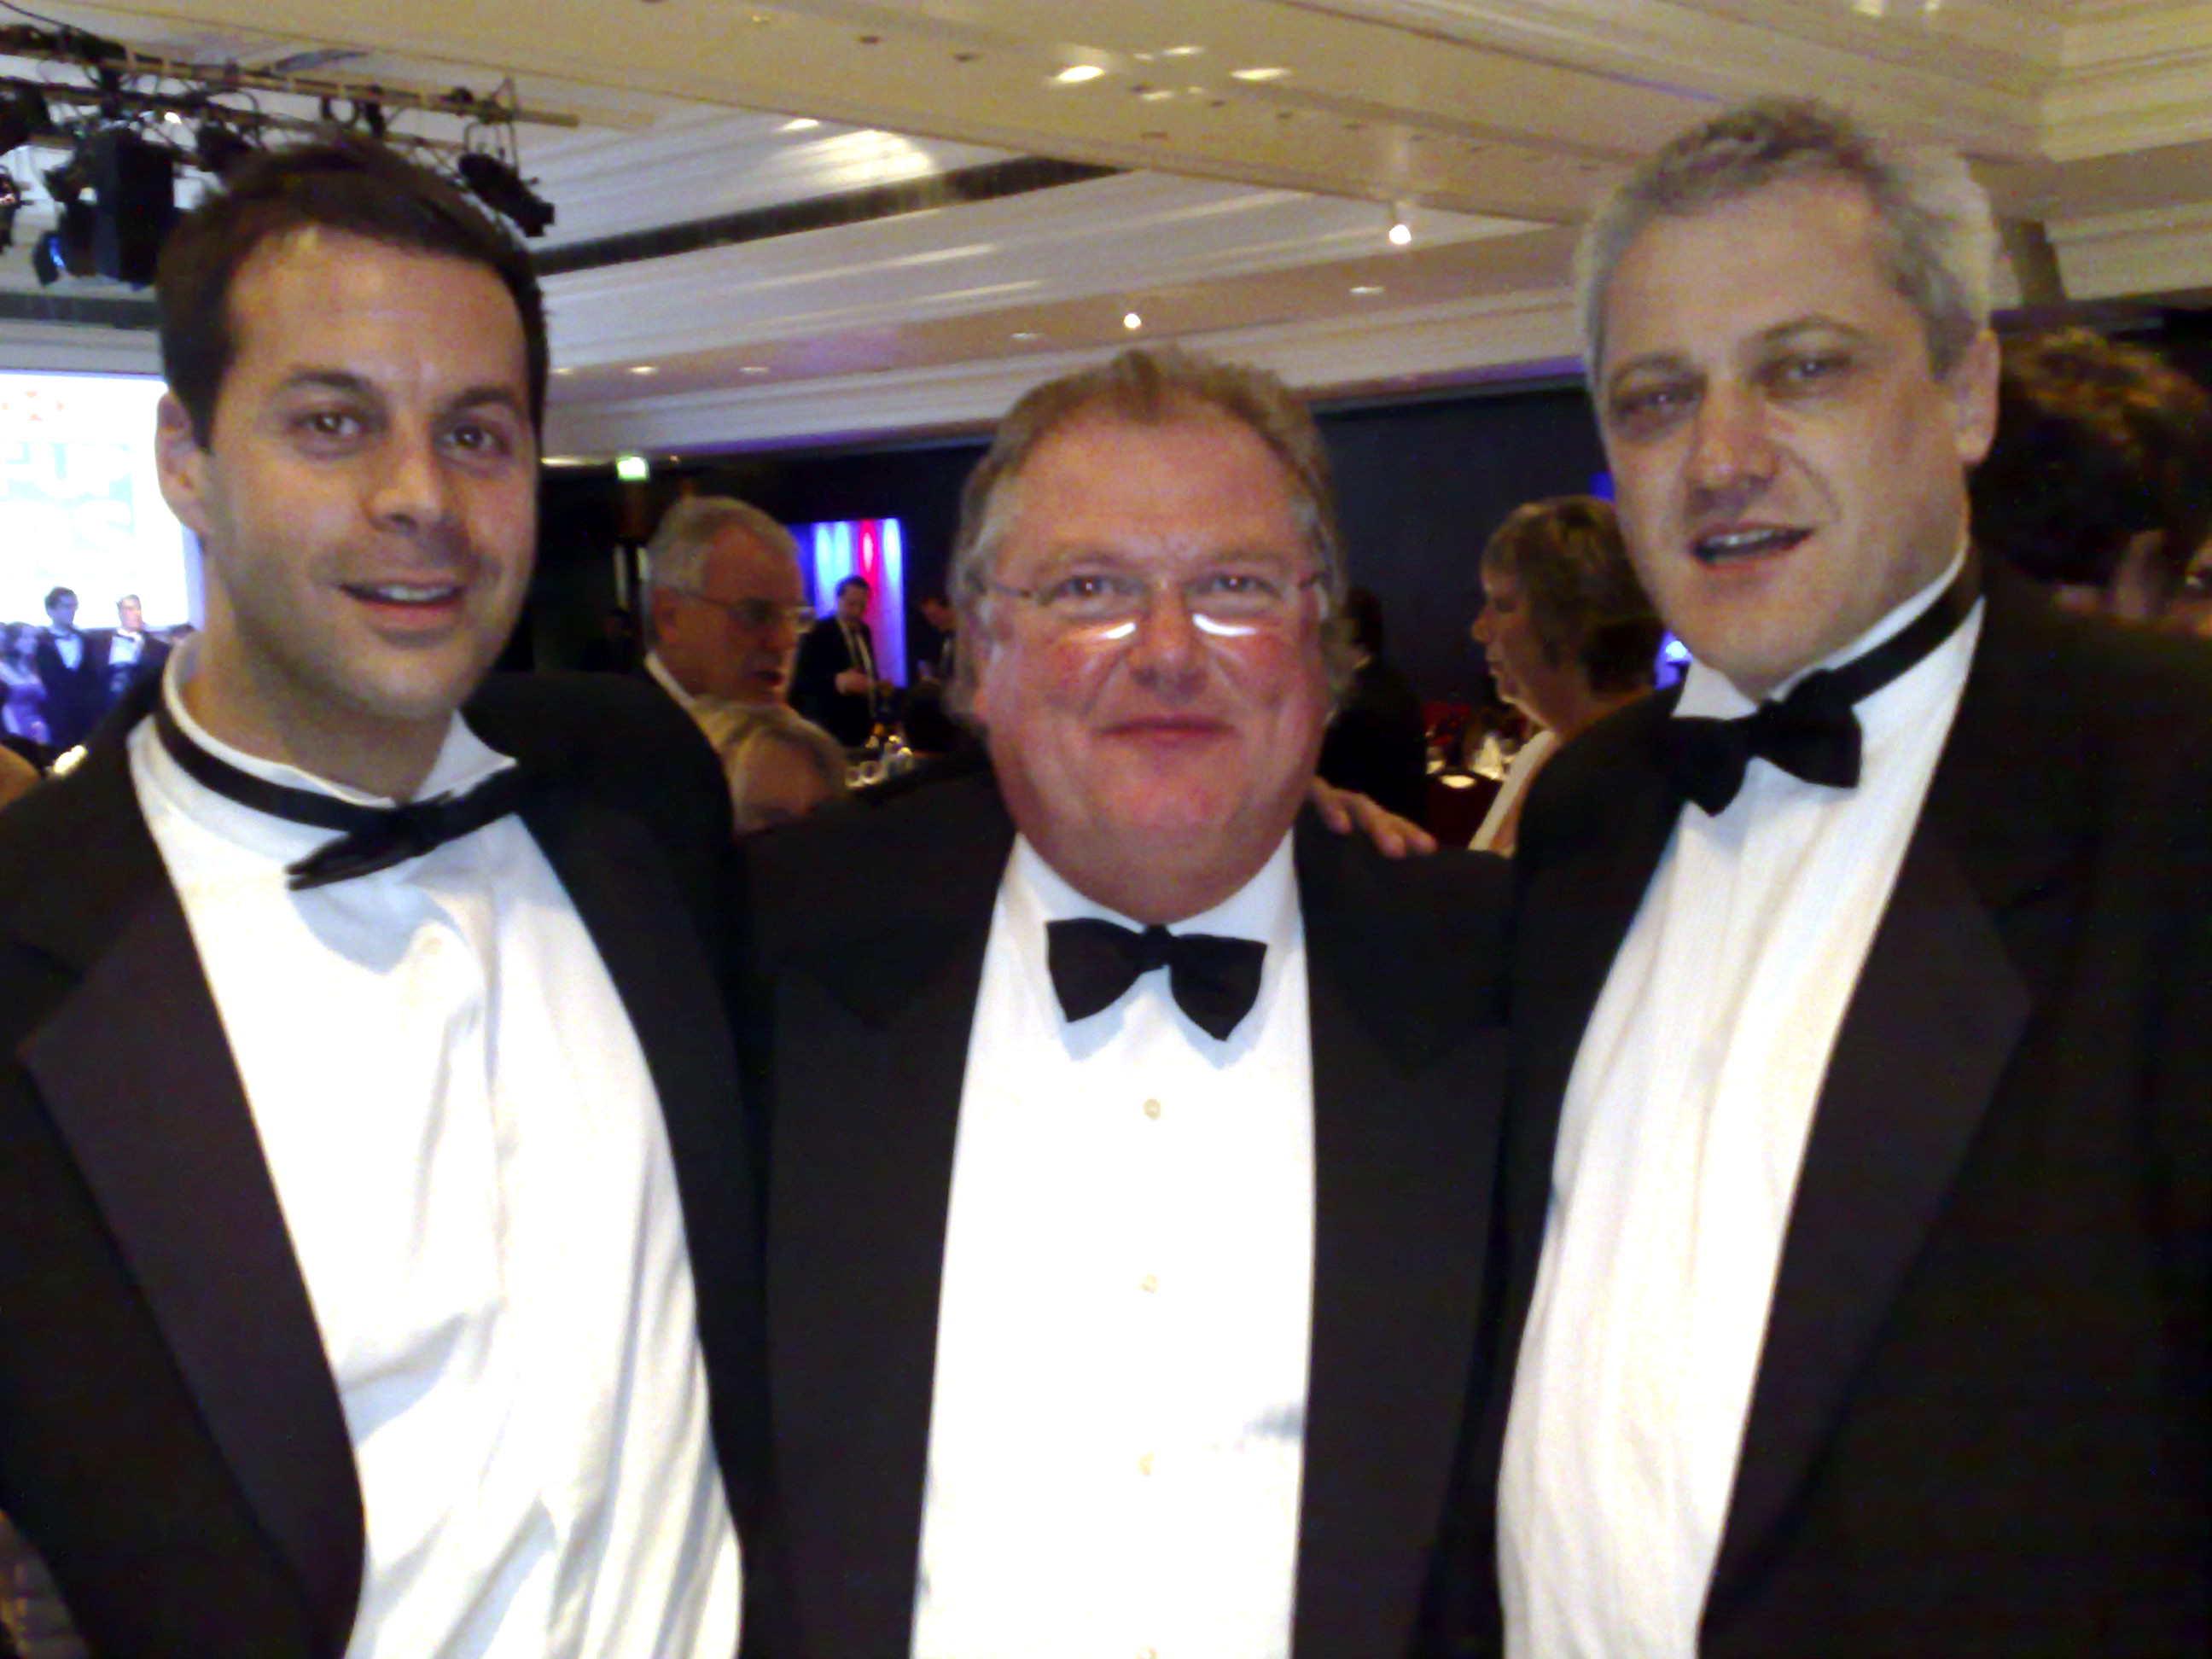 Lord Digby Jones with Richard Jobling and Ian Lyons of The Company Warehouse